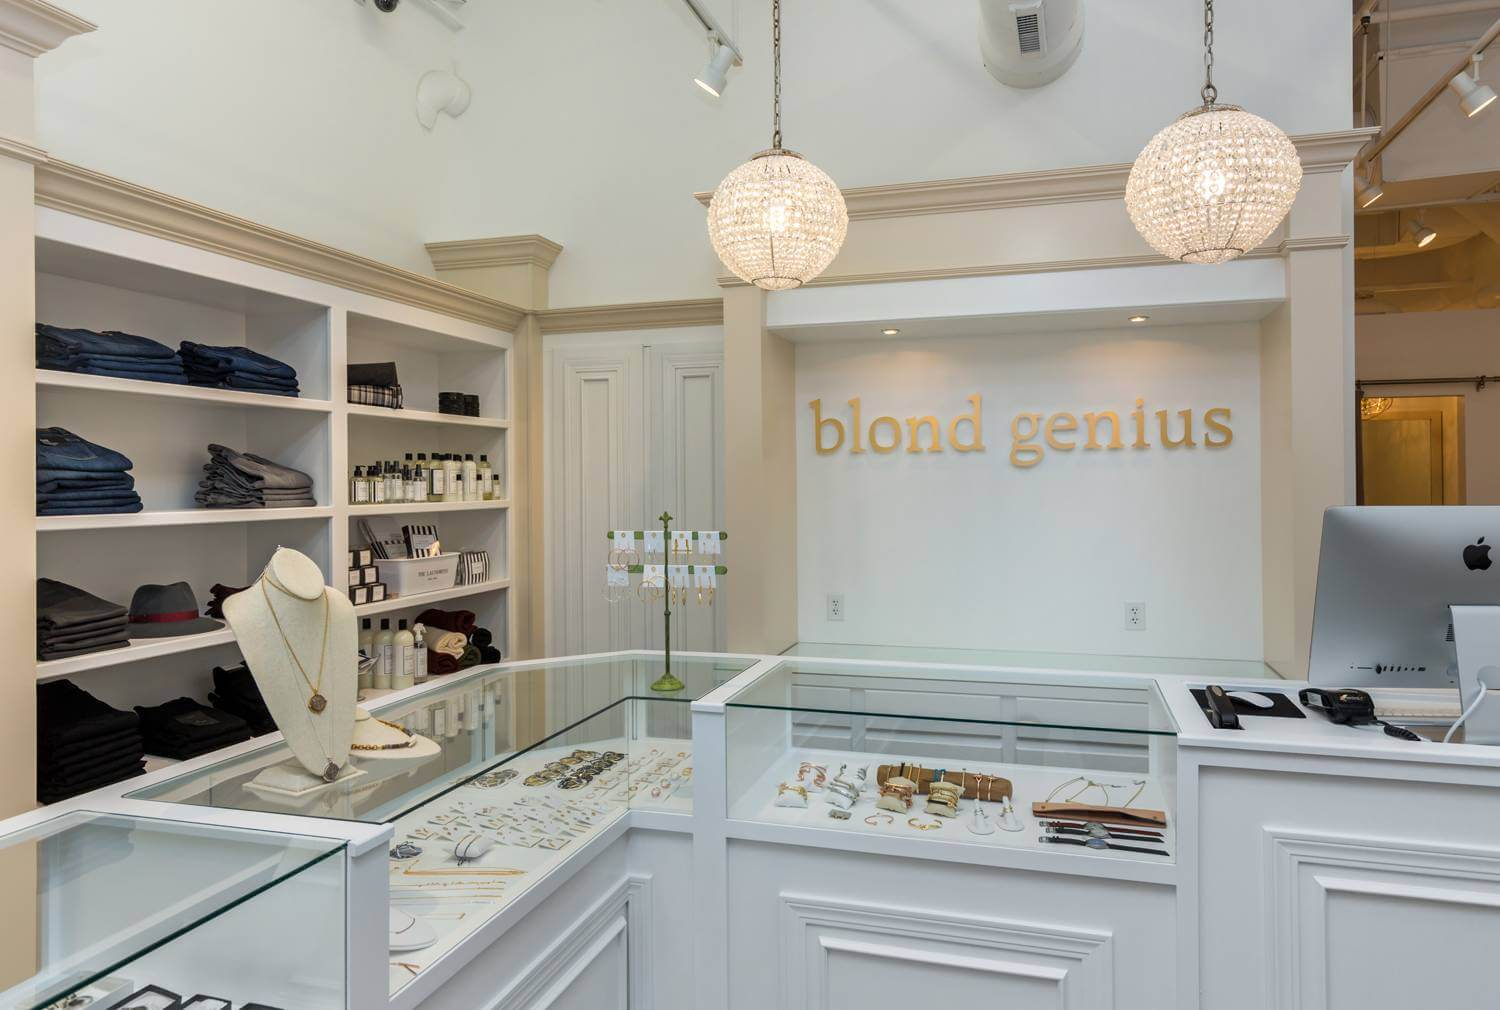 blond genius interior